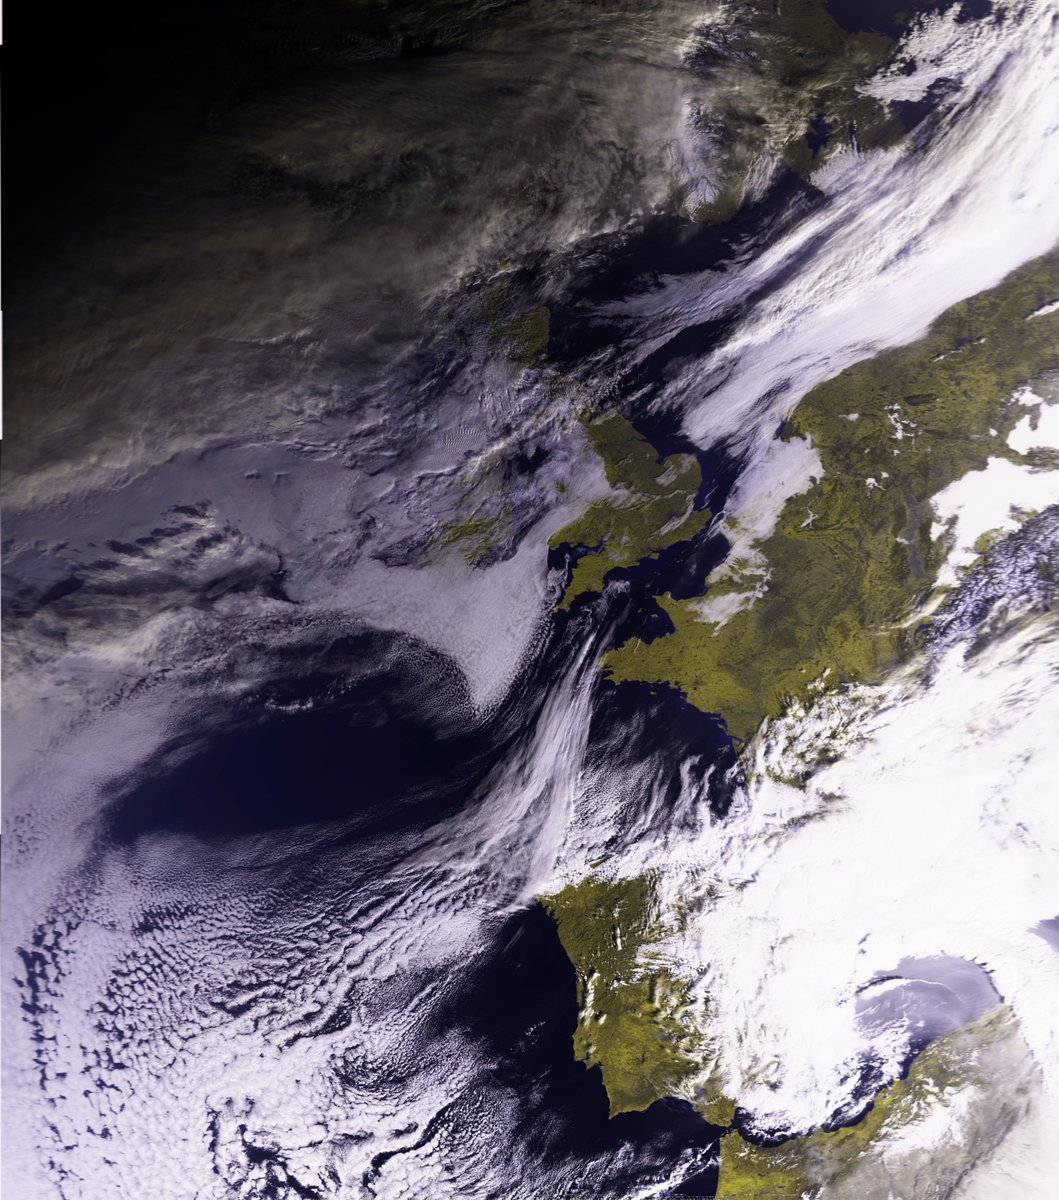 West of the Metop C hrpt. Handtracked out a cloudy nl.